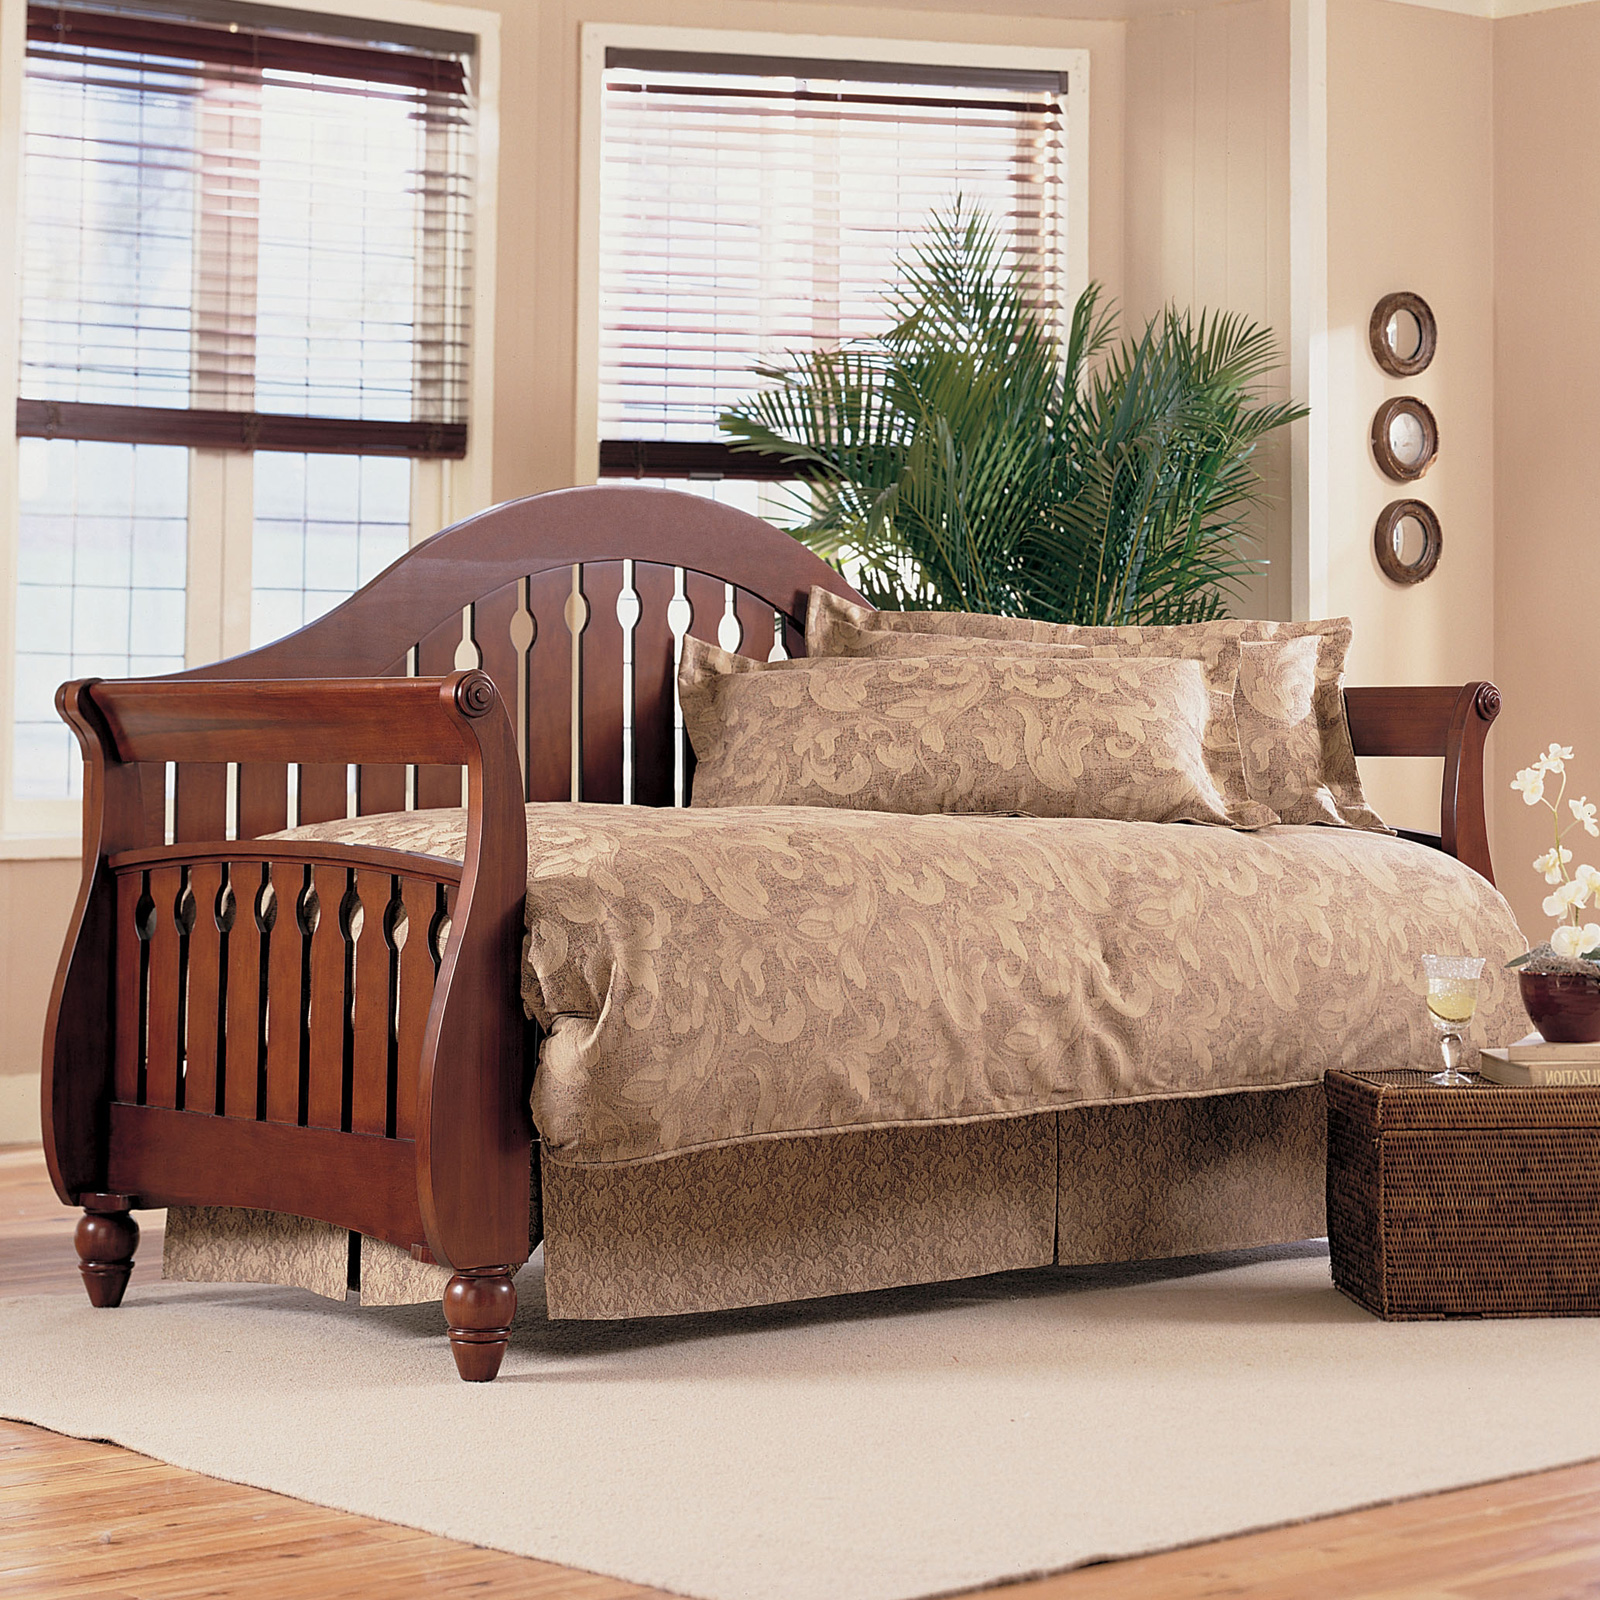 Daybeds | Shop at Hayneedle.com